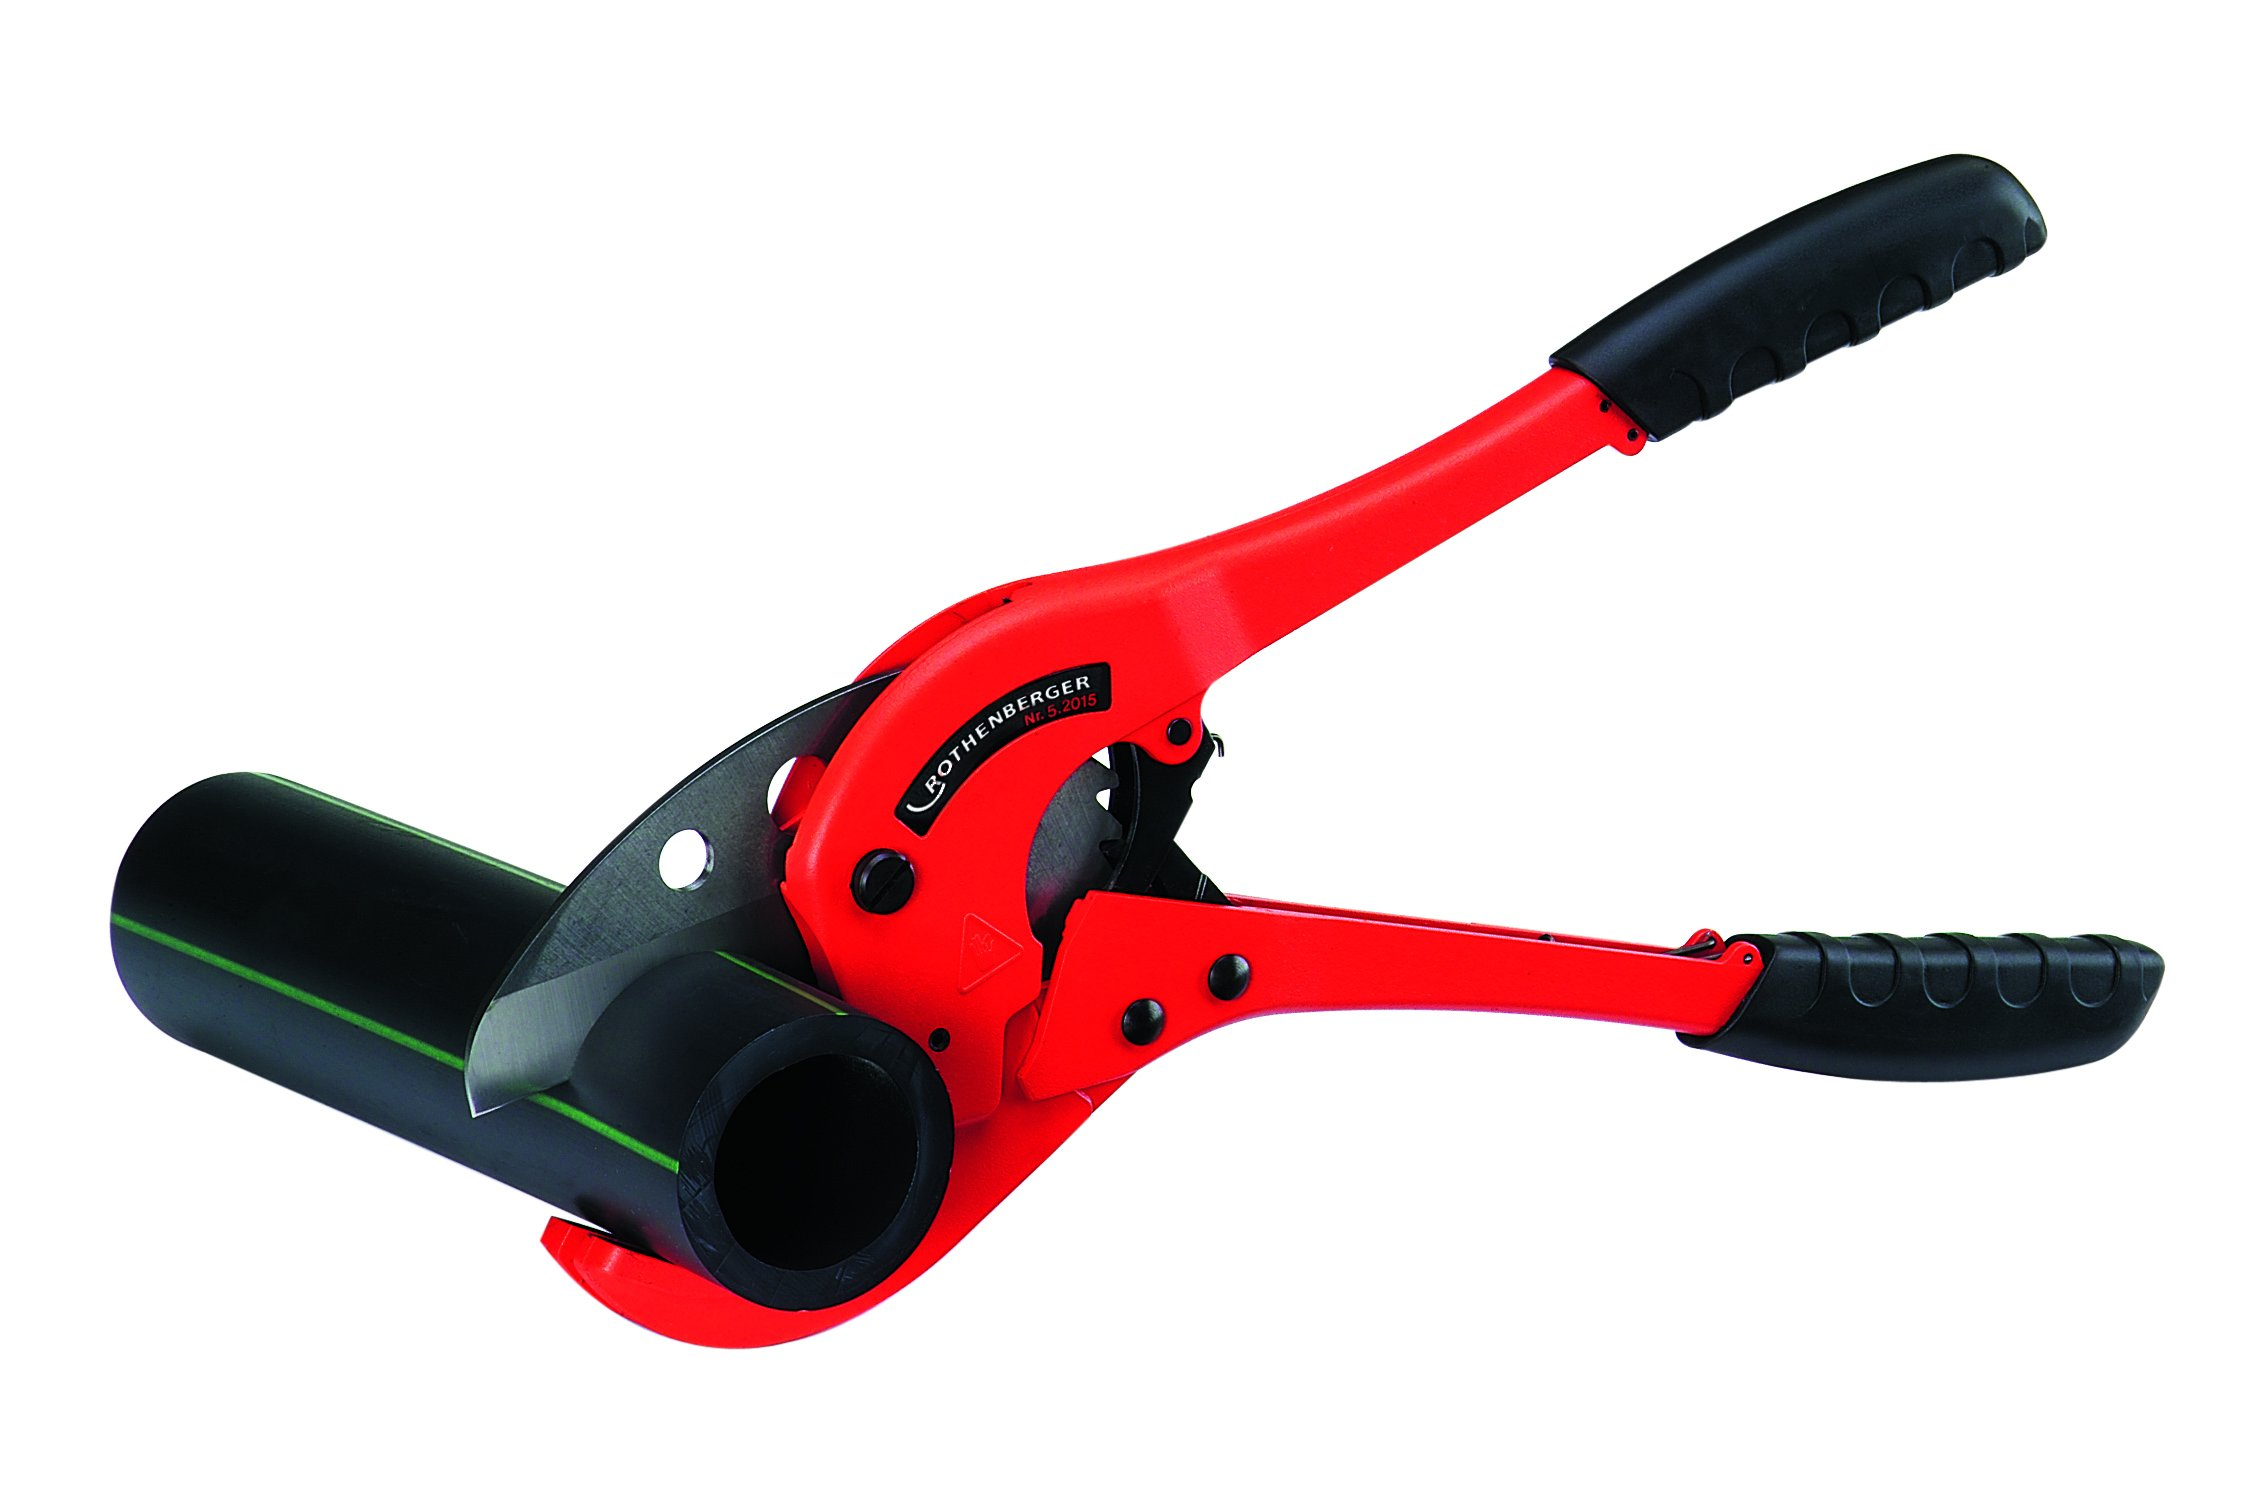 ROTHENBERGER 52015 Rocut 75TC - Professional Pipe Shears: Max. Sch. 40 PVC, 2-1/2'' and Max O.D. 3''